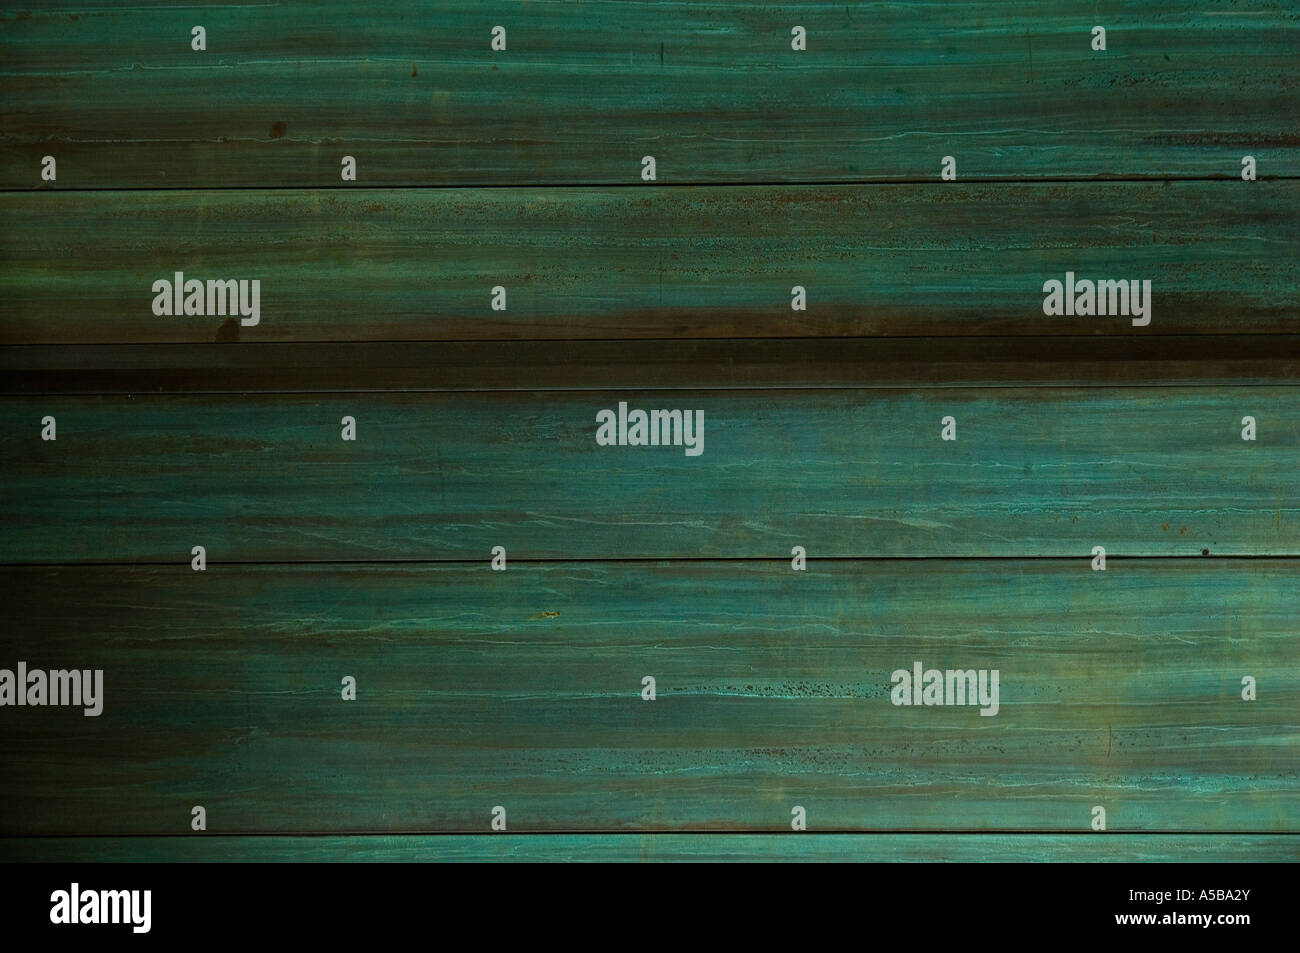 Green oxidized copper metal wall. - Stock Image